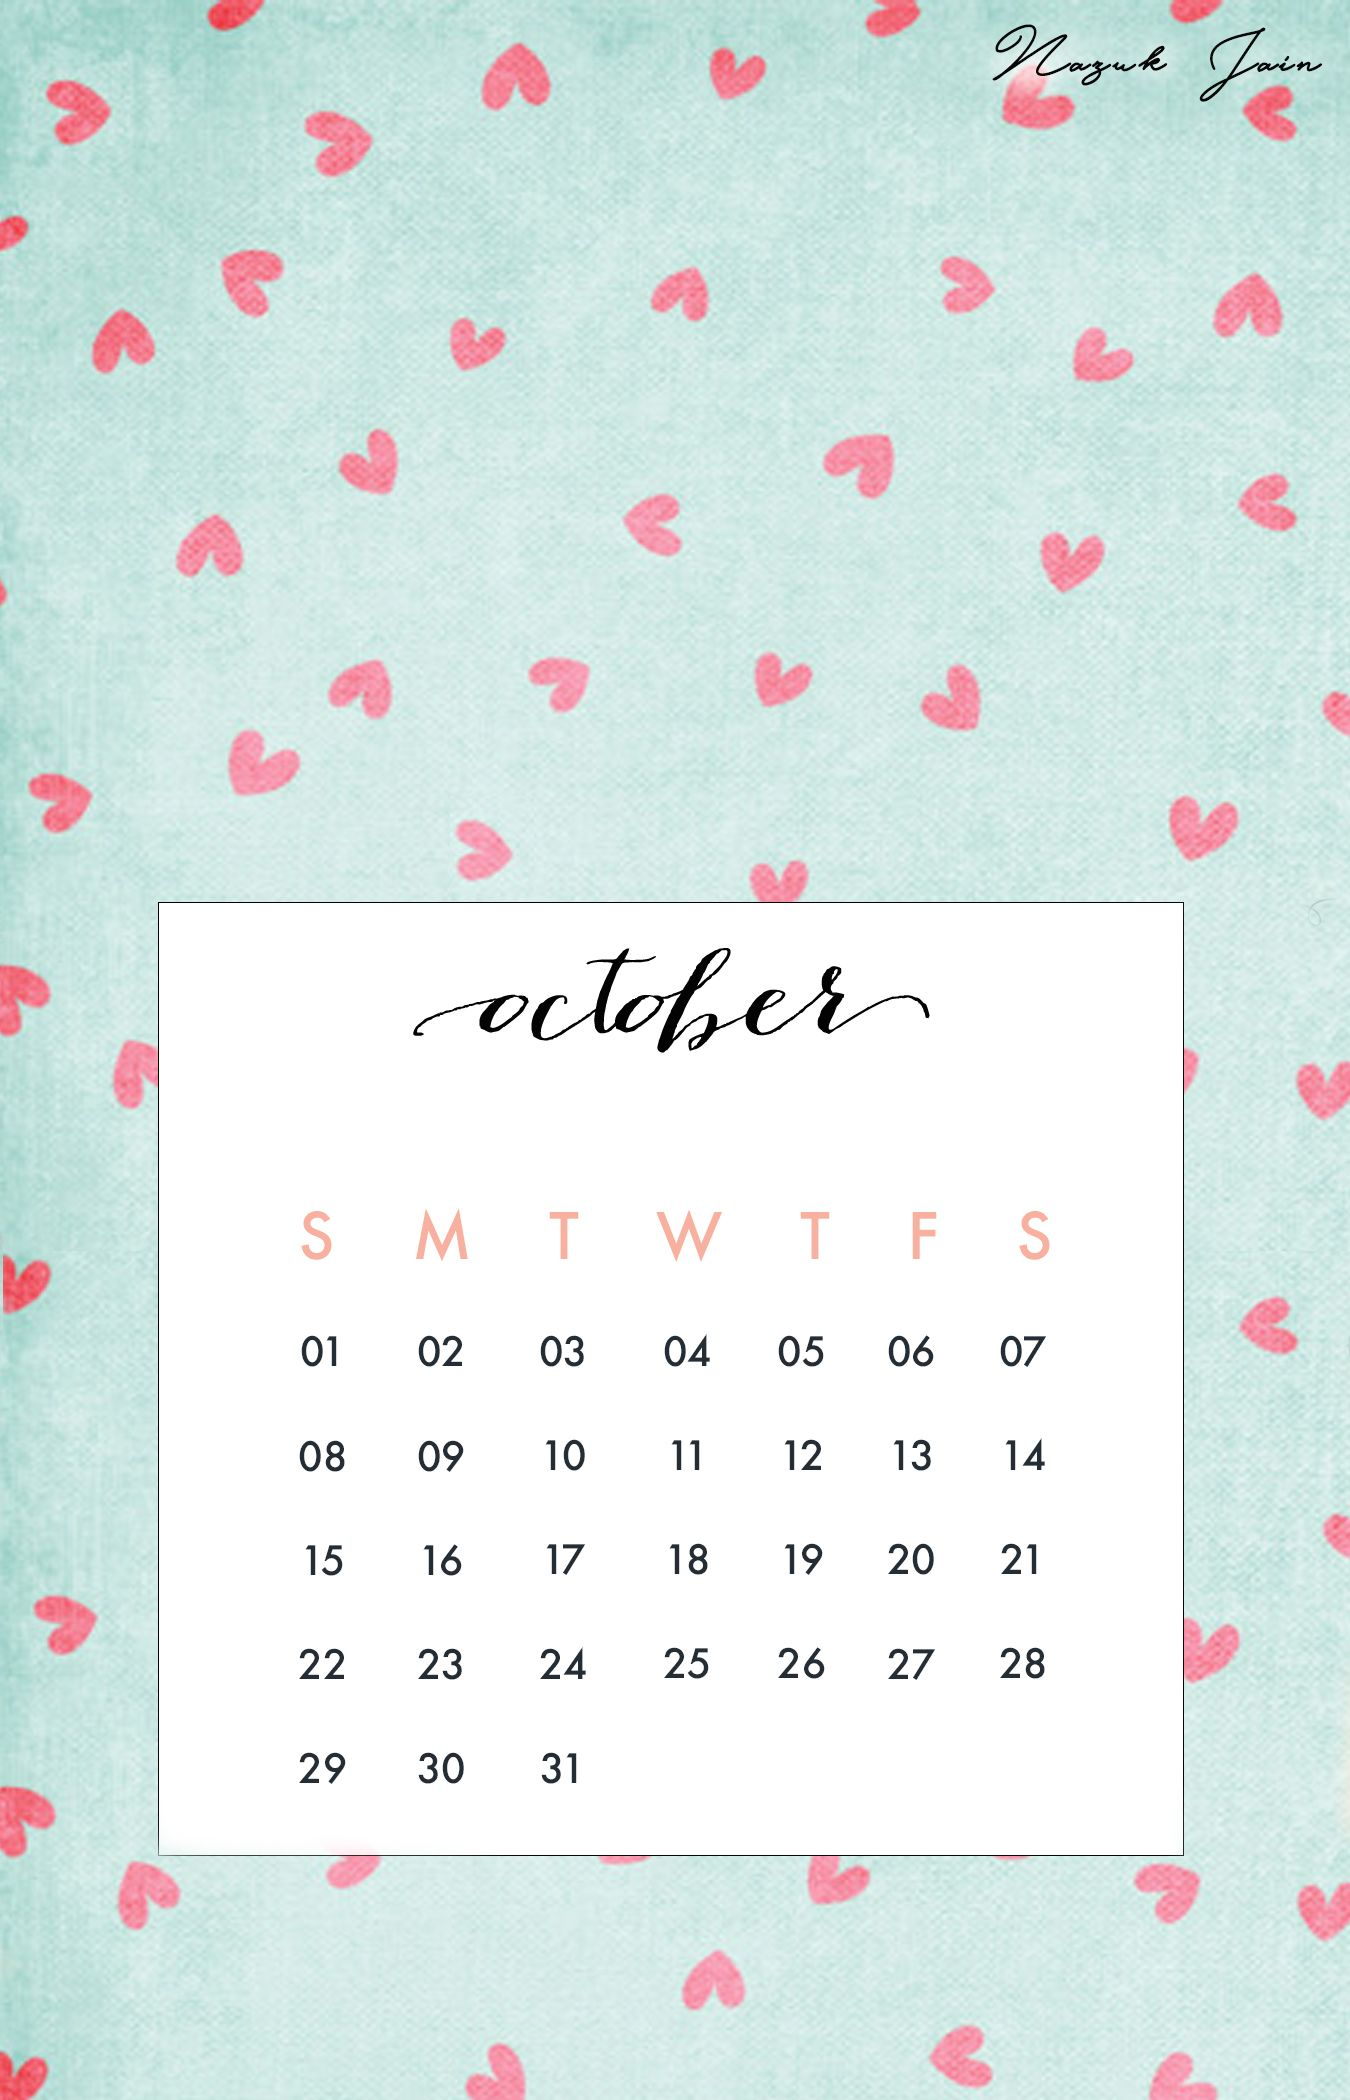 Calendar Wallpaper : October free calendar printables by nazuk jain